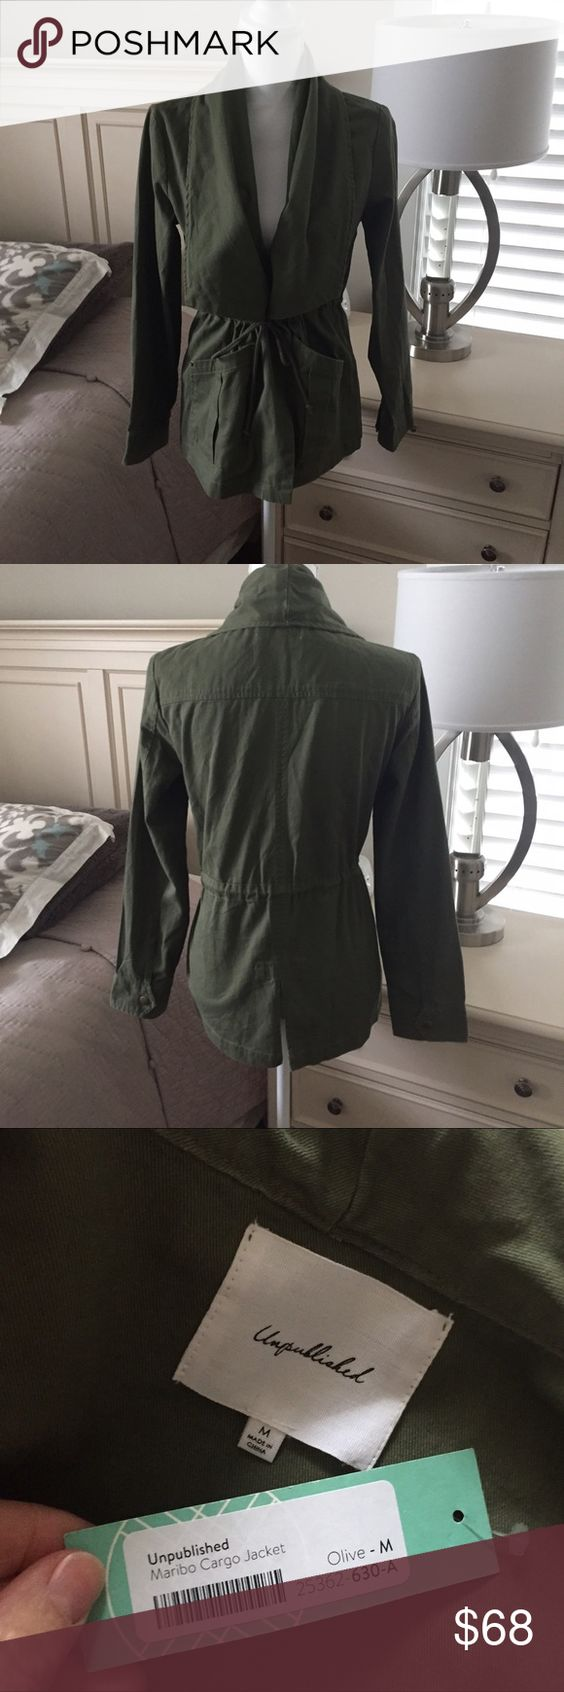 NWT unpublished maribo cargo olive jacket medium NWT unpublished maribo cargo olive jacket medium super cute -Color is actually a little lighter  than shown in pictures due to bad lighting 😊 unpublished Jackets & Coats